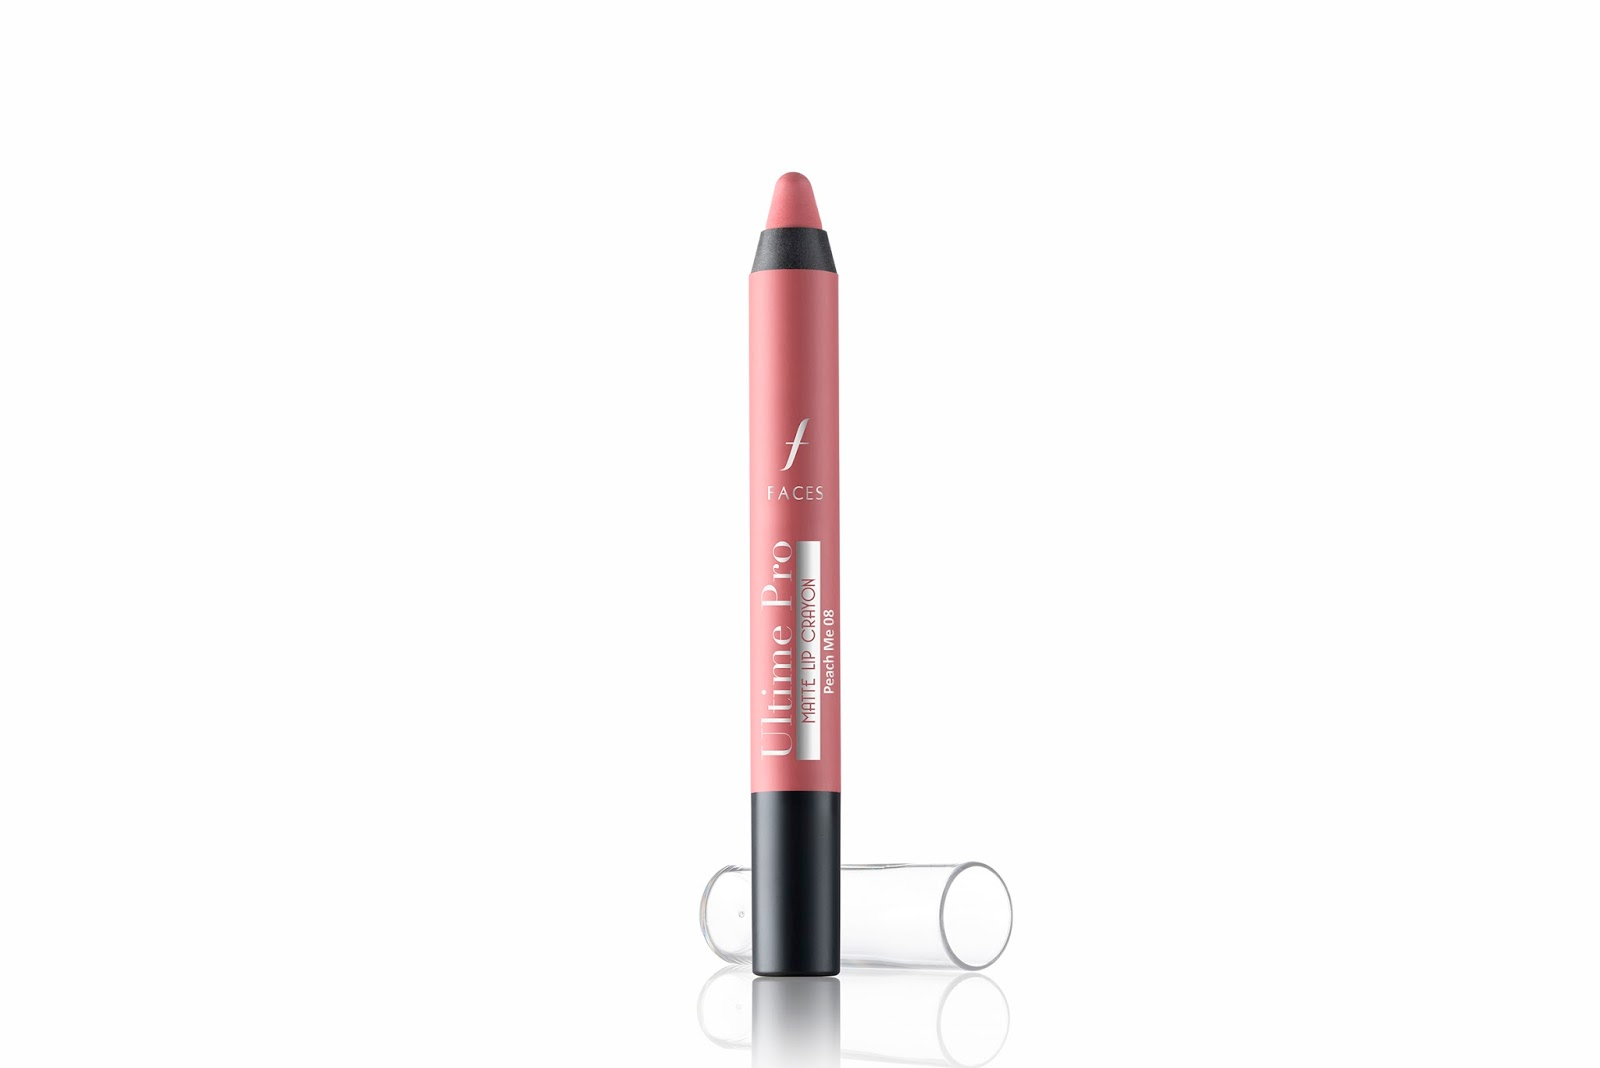 FACES Cosmetics Redefines Smoothness with the New Ultime Pro Lip Crayon| Press Note| Cherry On Top Blog